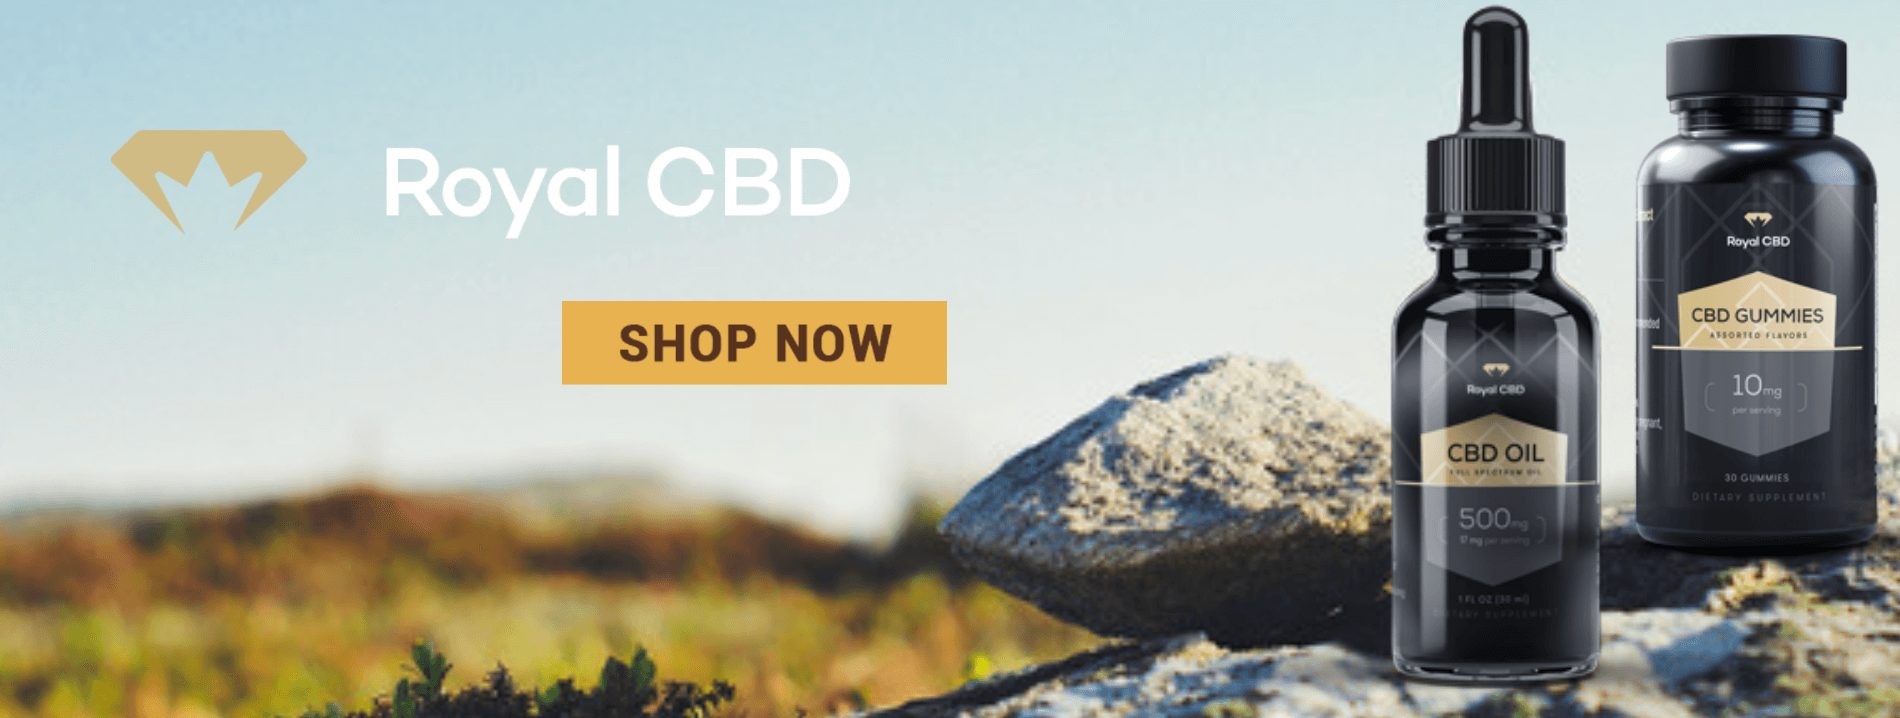 Royal CBD Review